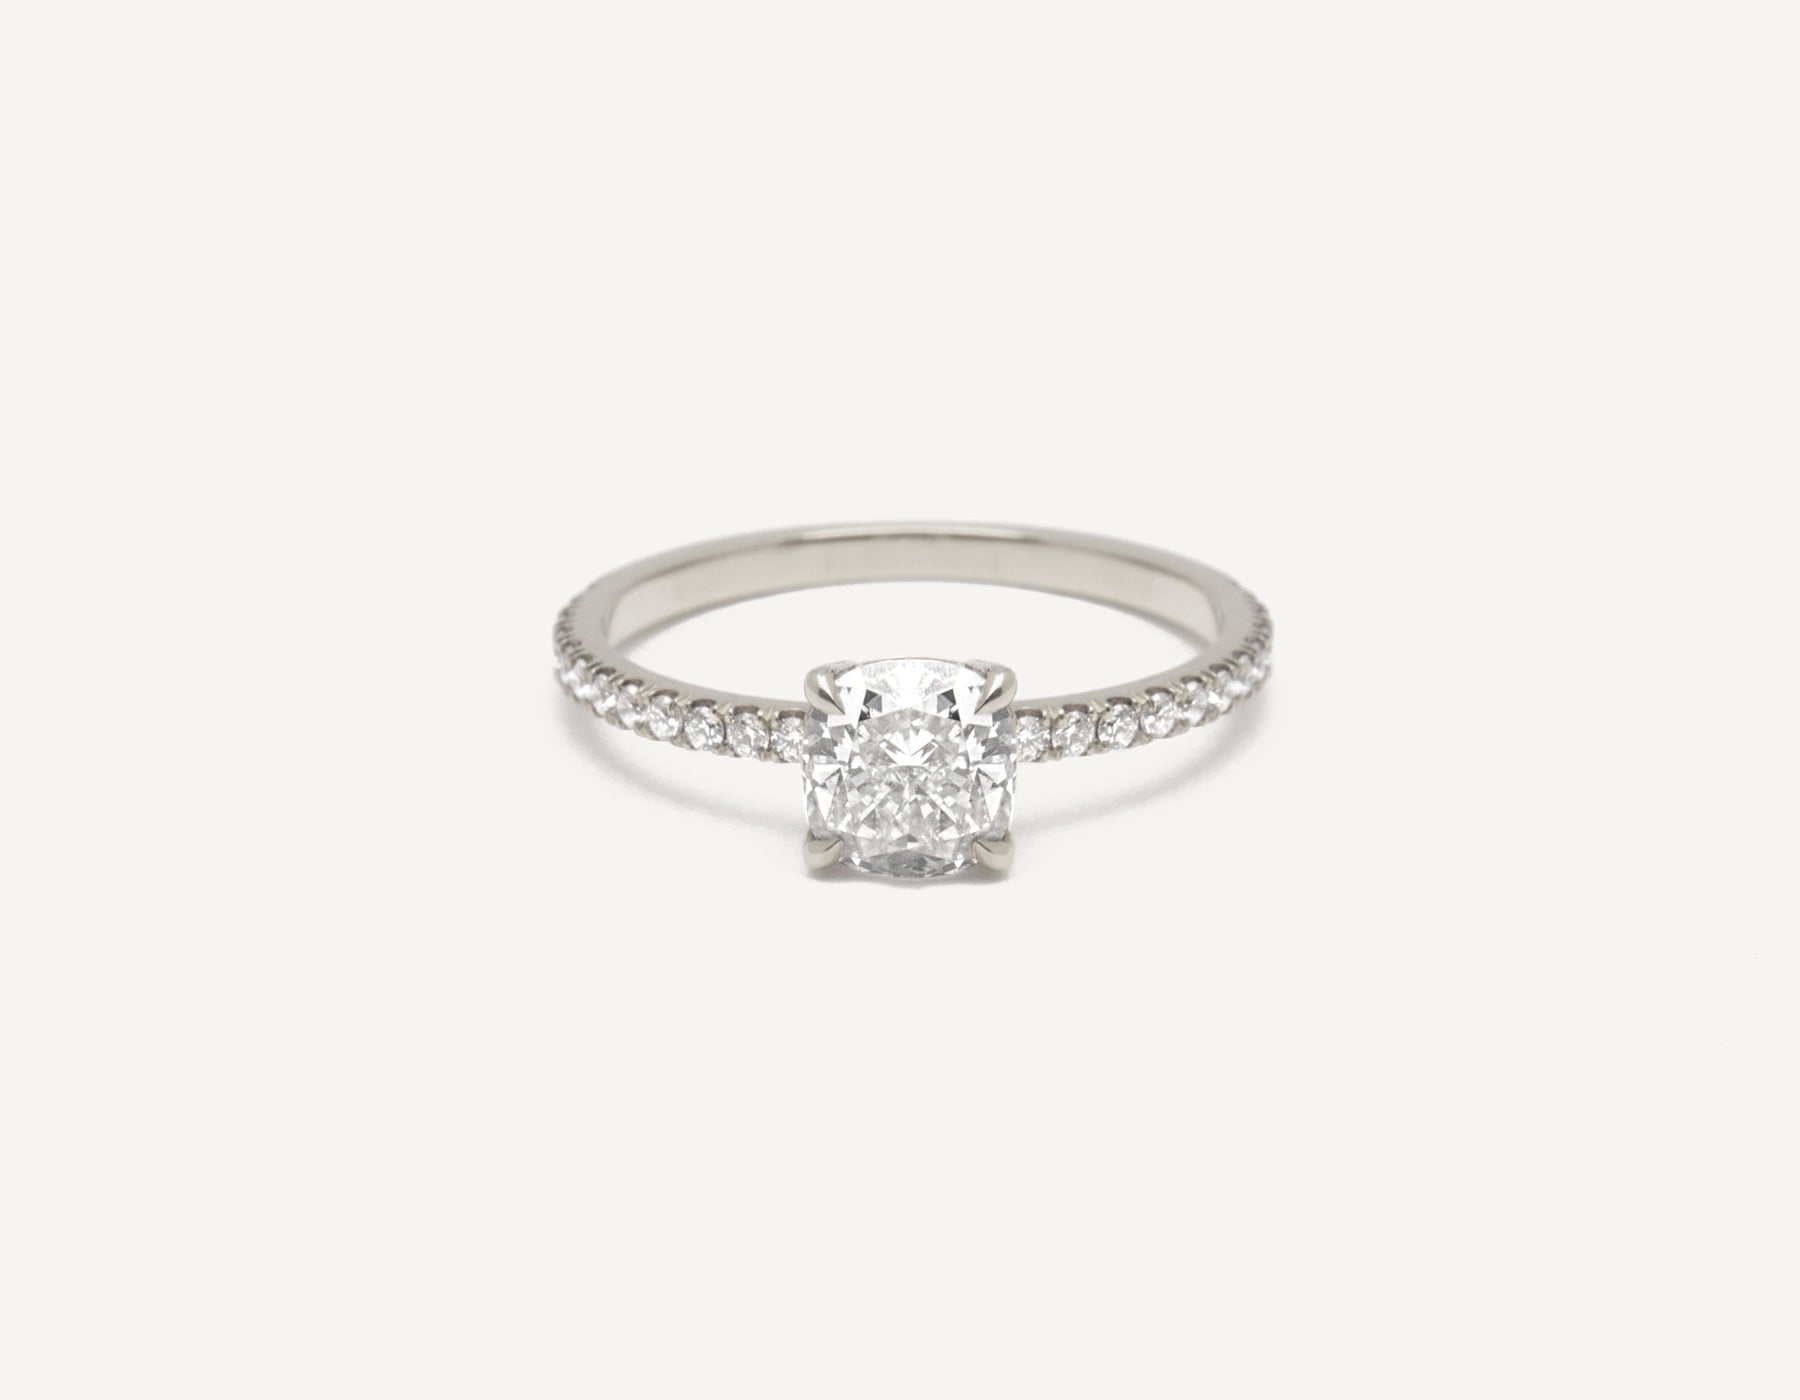 Minimalist platinum The Cushion Pave engagement ring 1 ct diamond Vrai and Oro